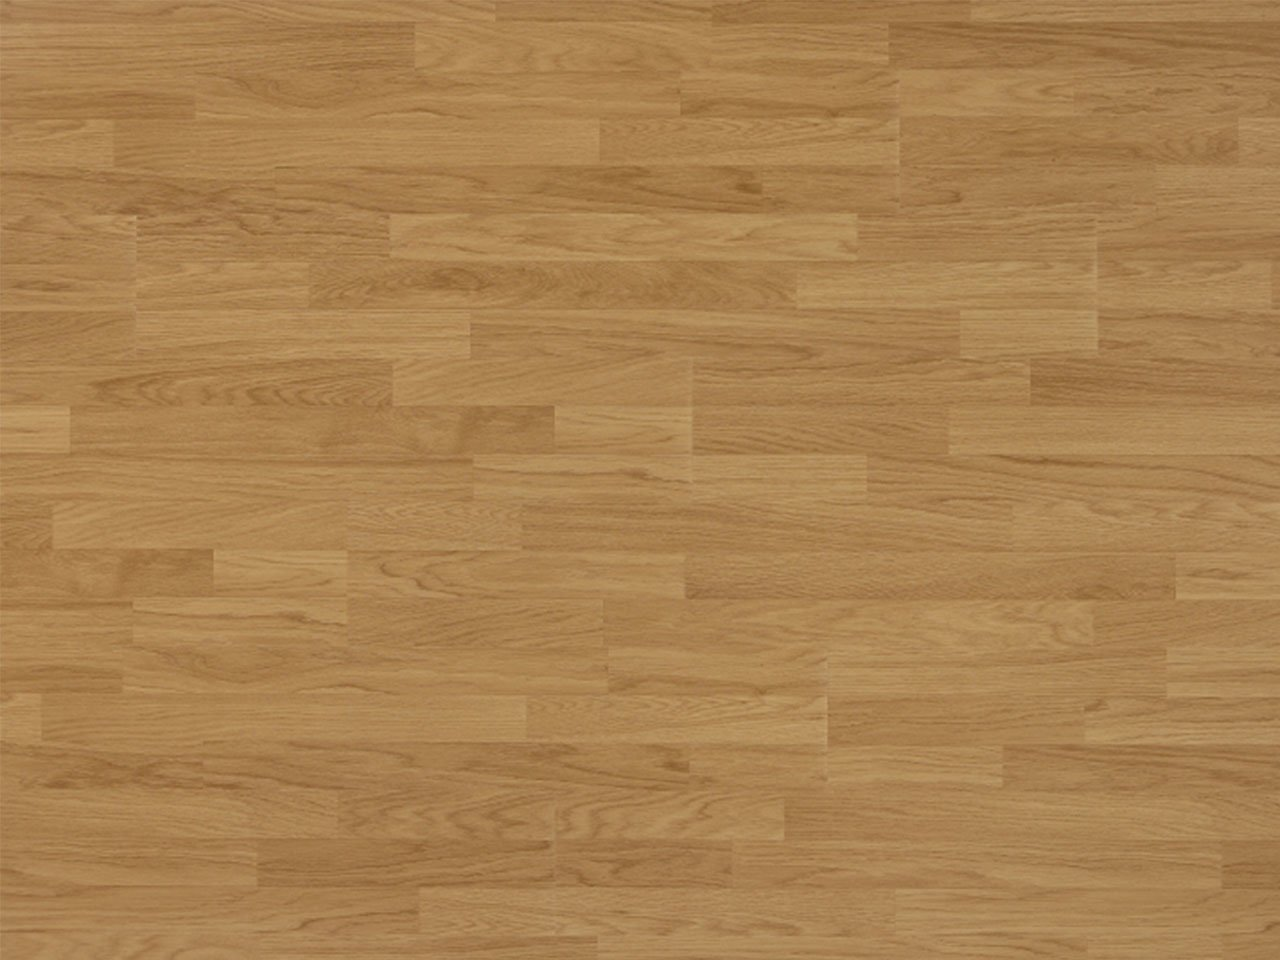 Laminato oak 3strip 6mm 1292x192mm iperceramica for Finto parquet ikea